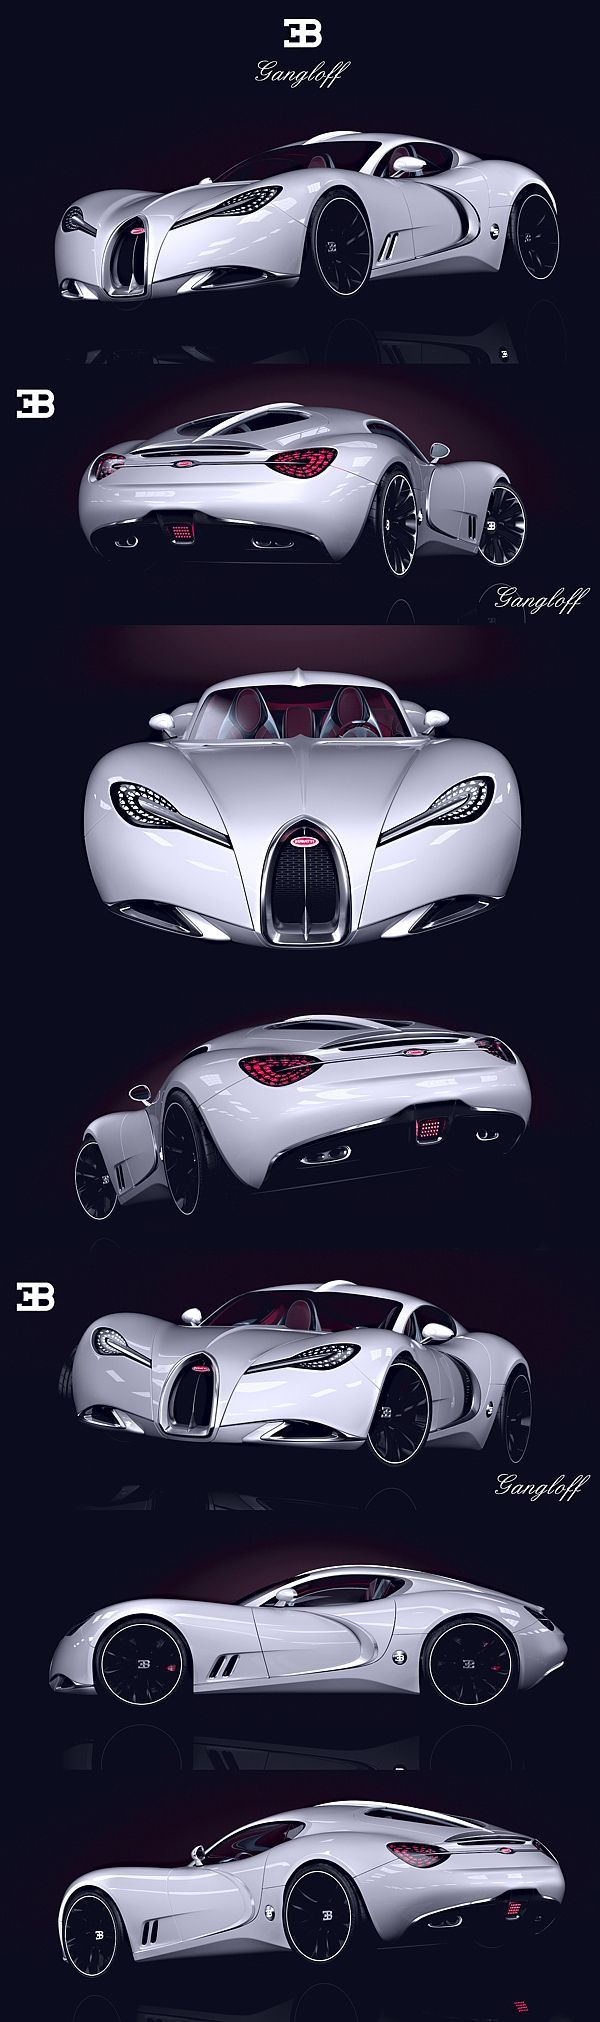 Bugatti Gangloff Concept by Paweł Czyżewski...probably the most beautiful concept ever ...: Concept, Bugatti Gangloff, Gangloff Concept, Auto, Concept Cars, Bugattigangloff